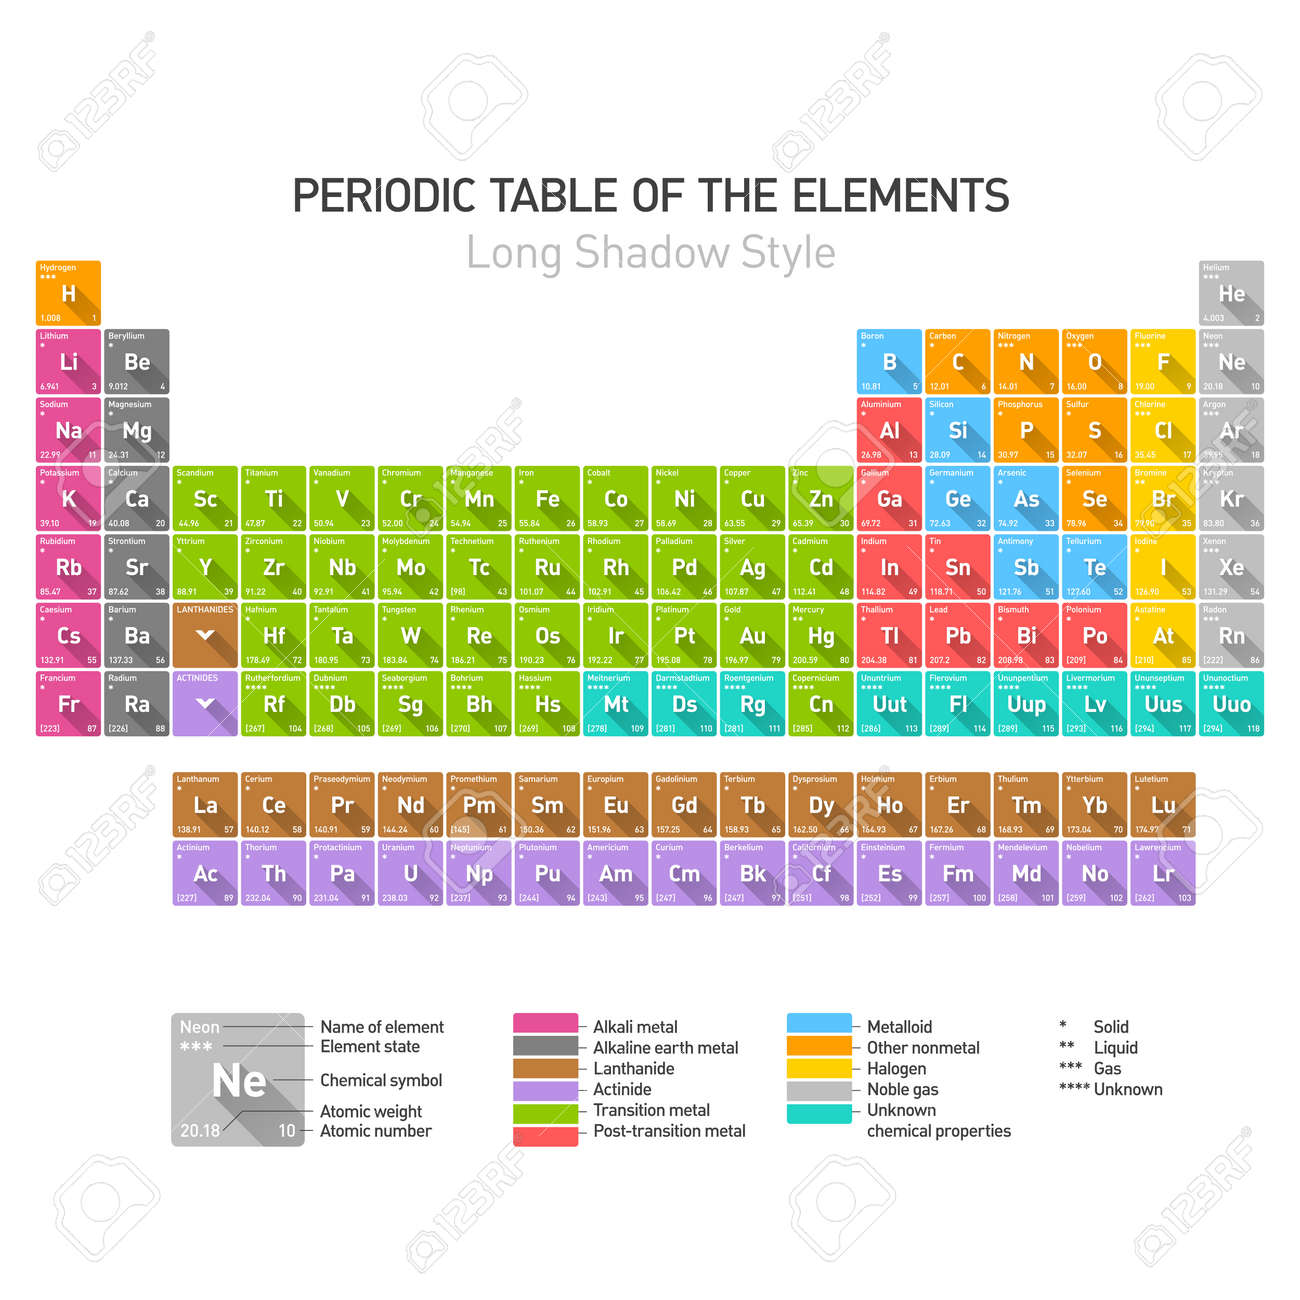 Table stock photos royalty free business images periodic table of the chemical elements illustration urtaz Choice Image